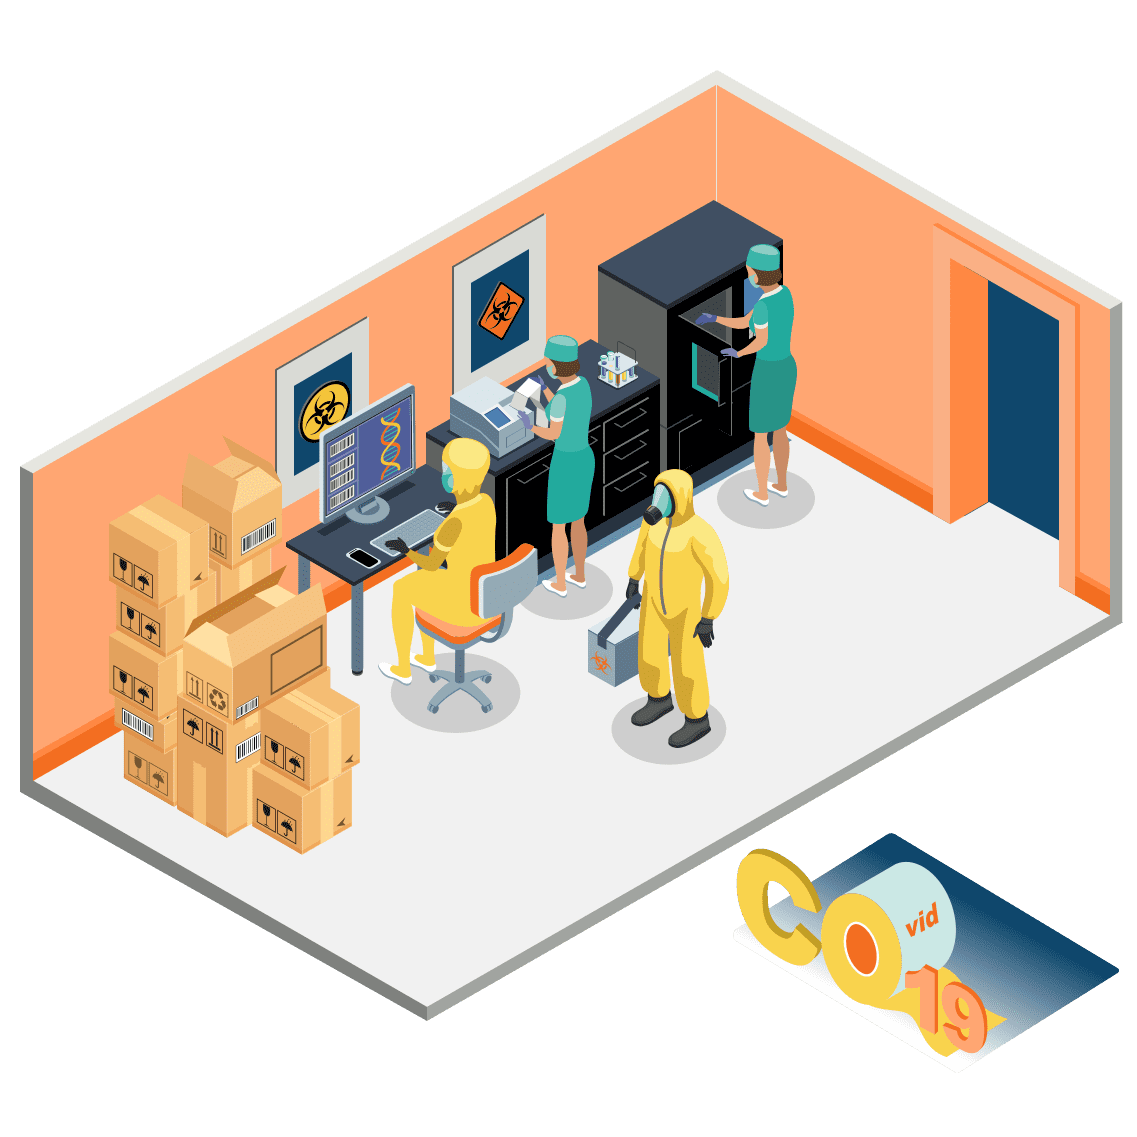 Ppe Inventory Management An Efficient Inventory Tracking